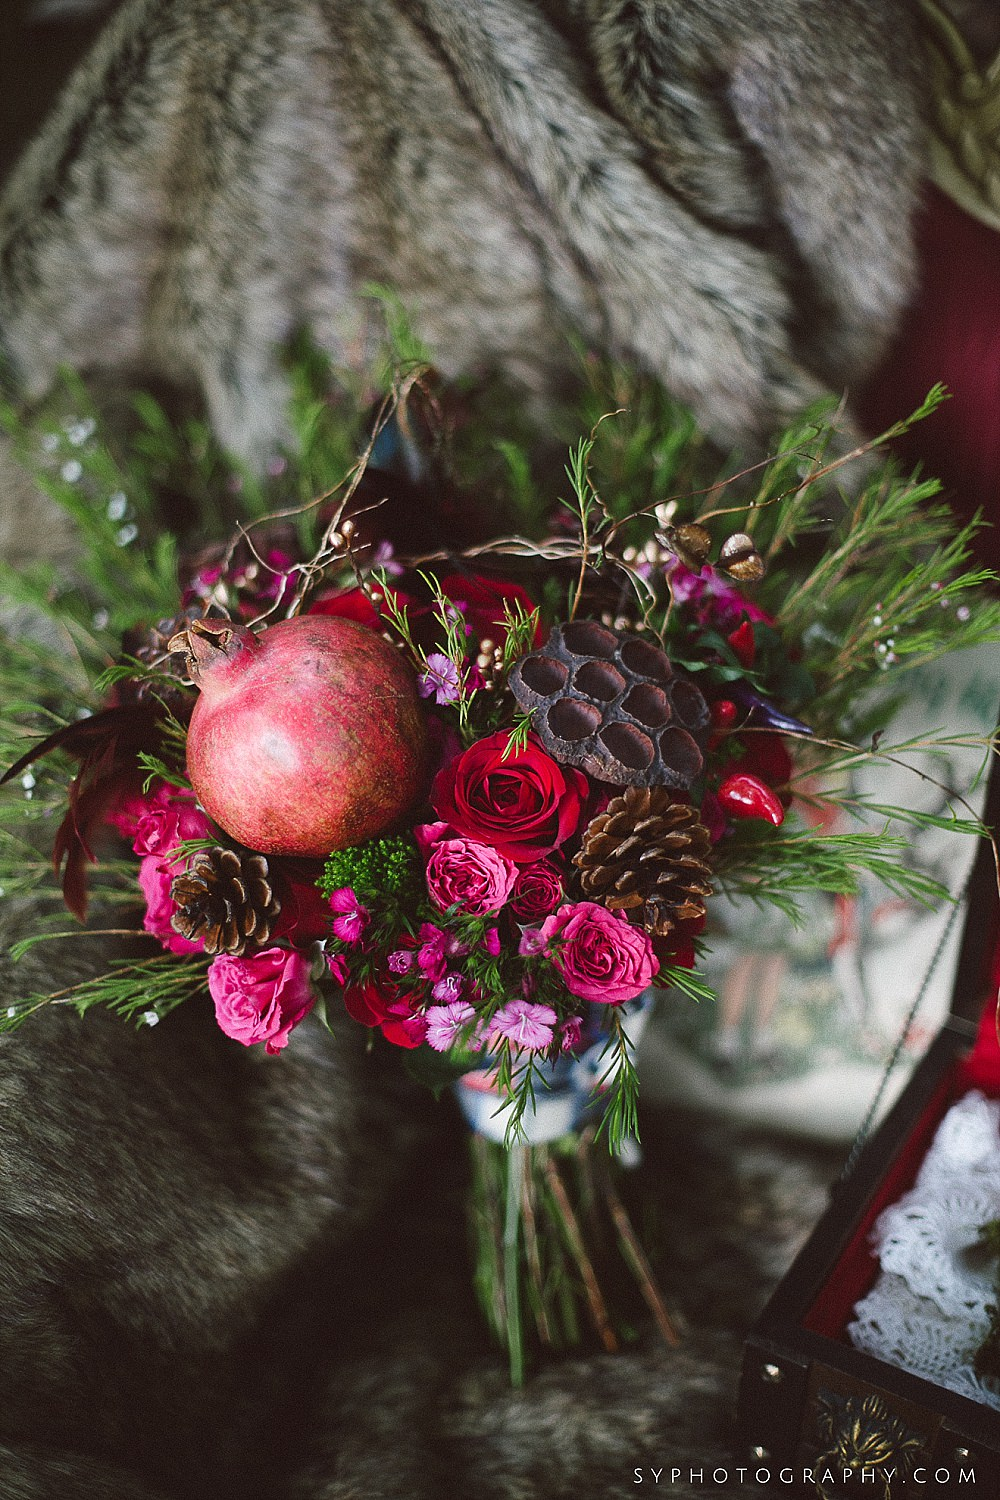 56 Woodland Bouquet Little Red Riding Hood Wedding Inspiration Chester County Wedding.jpg